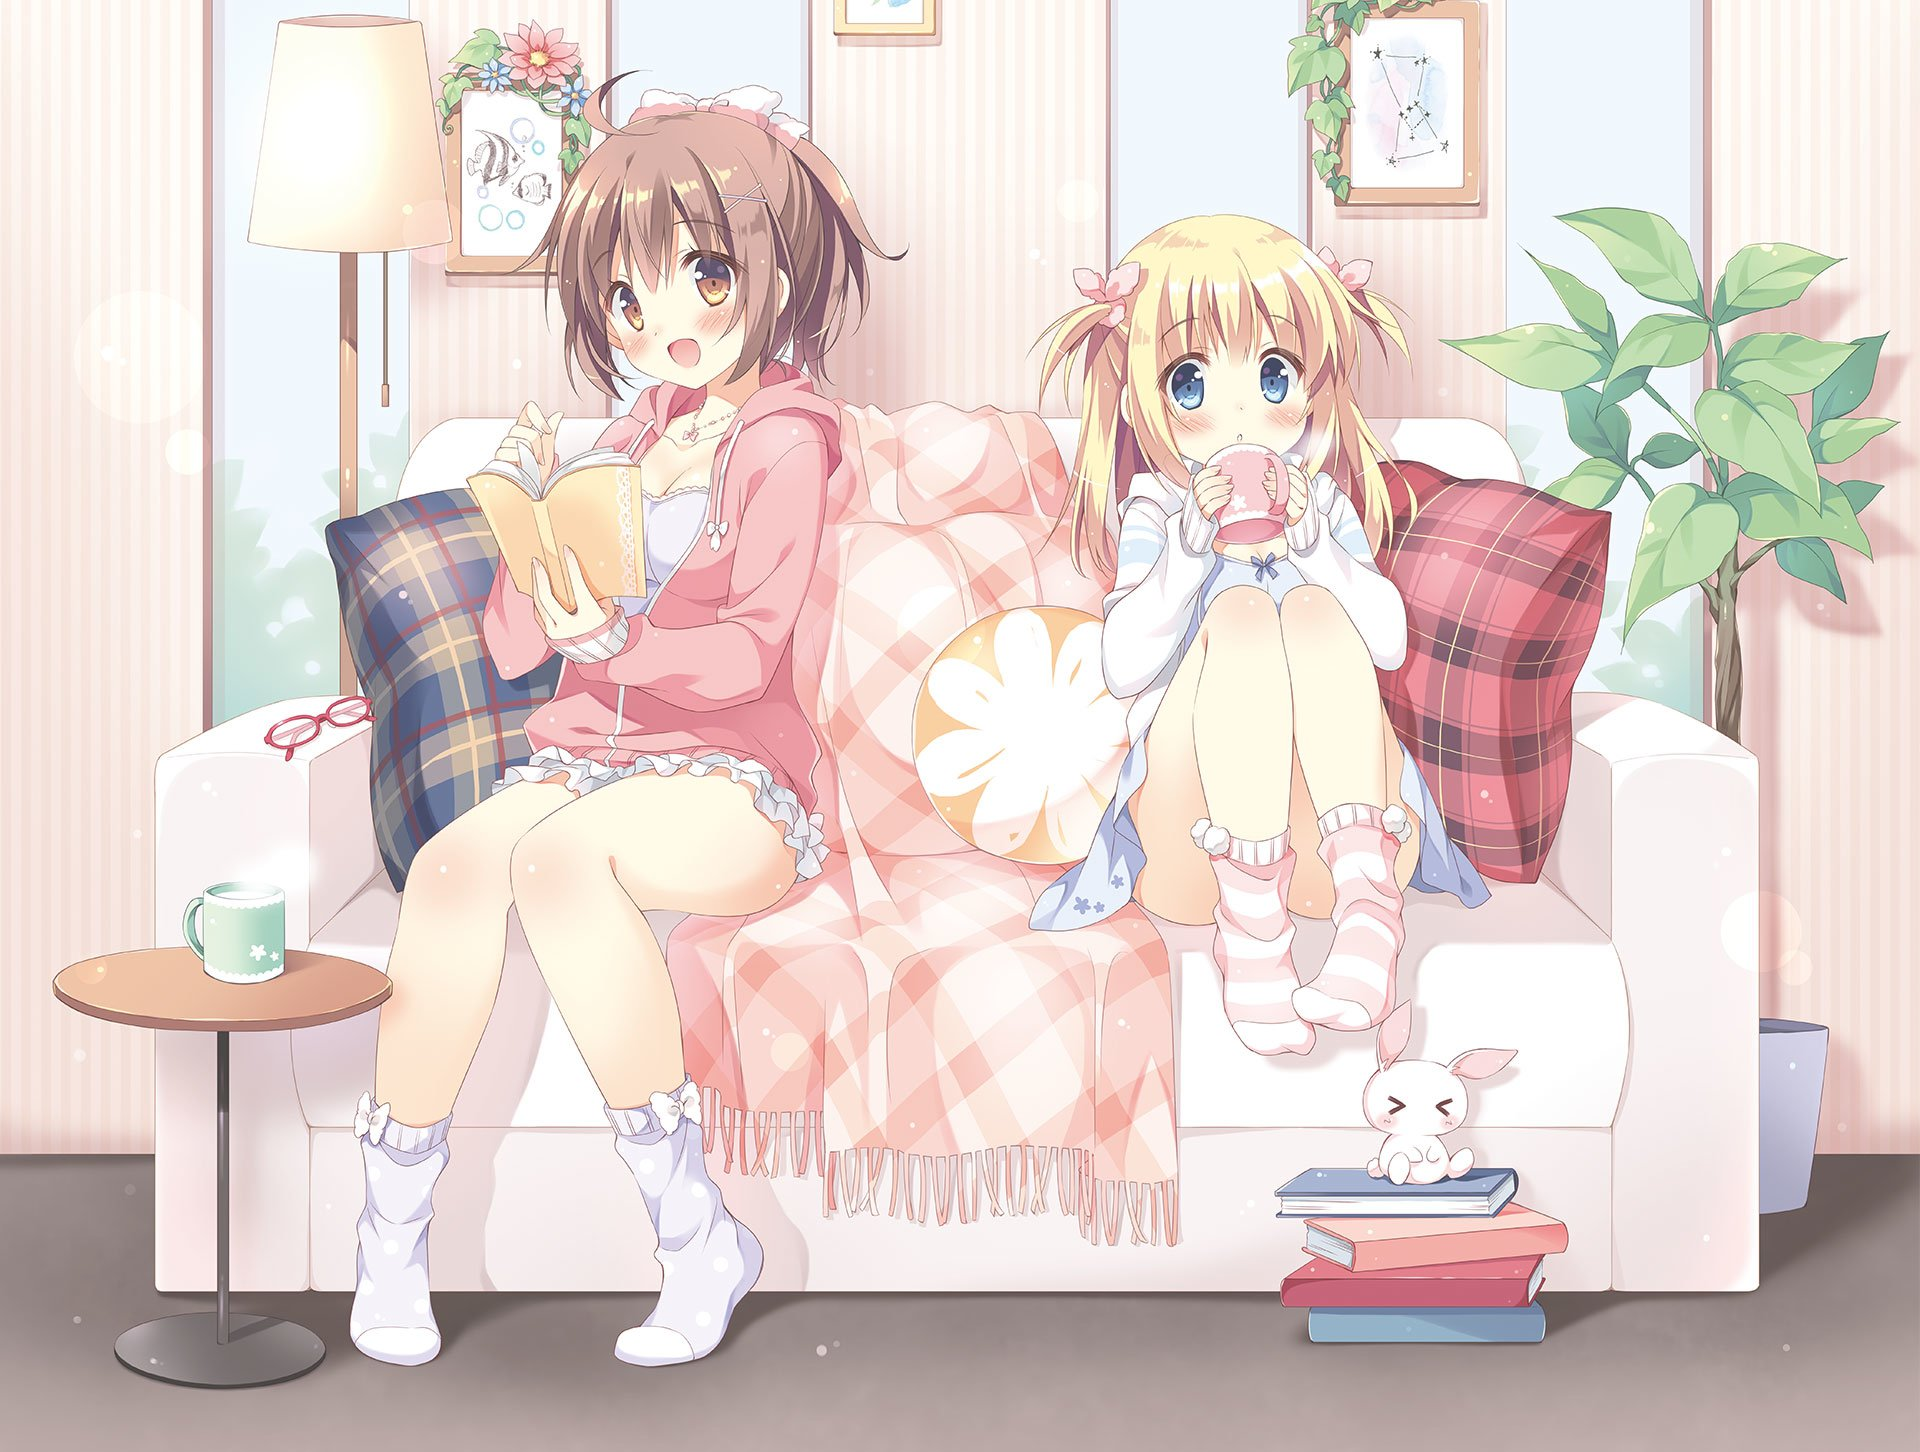 Anime - Original  Girl Short Hair Blonde Socks Glasses Cup Blue Eyes Blush Brown Hair Couch Book Stuffed Animal Table Dress Wallpaper